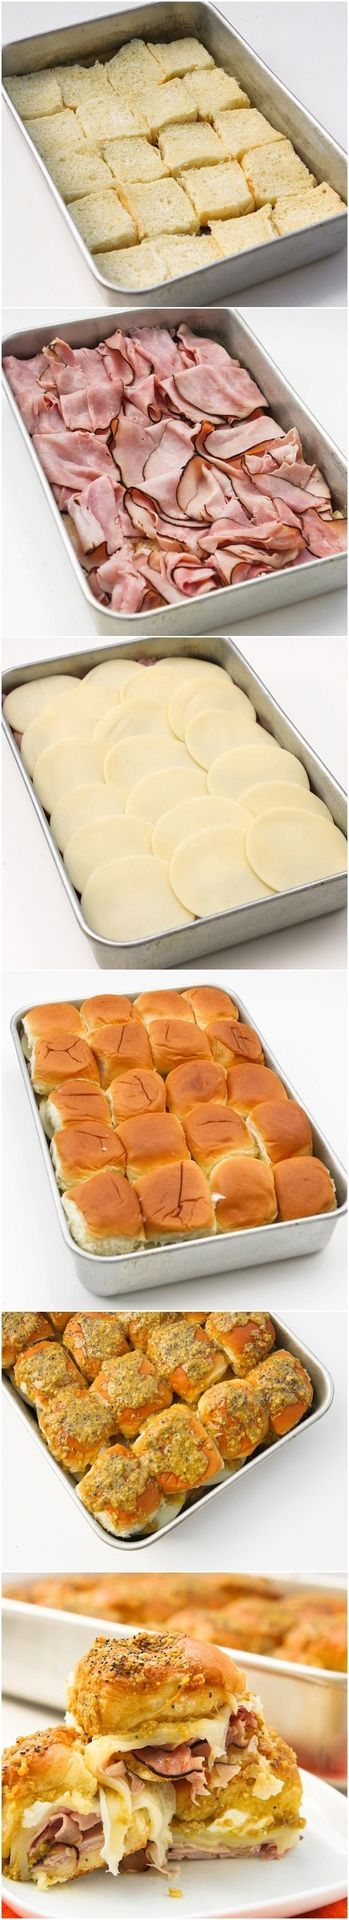 Easy Hawaiian Rolls with Ham and Cheese perfect for my band brats